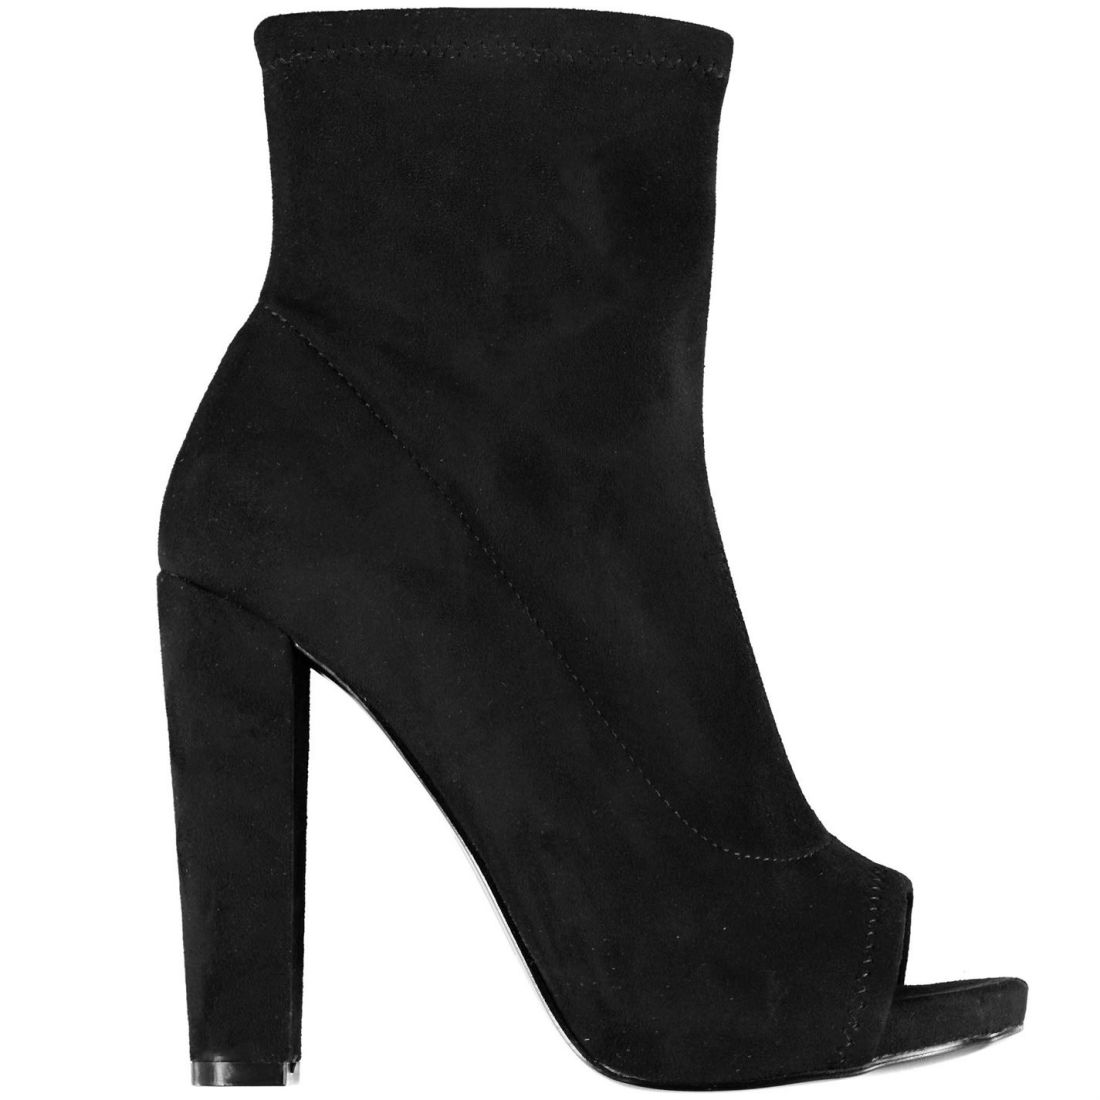 4435b26b881 Details about Steve Madden Ladies Esspecial Boots Shoes Footwear